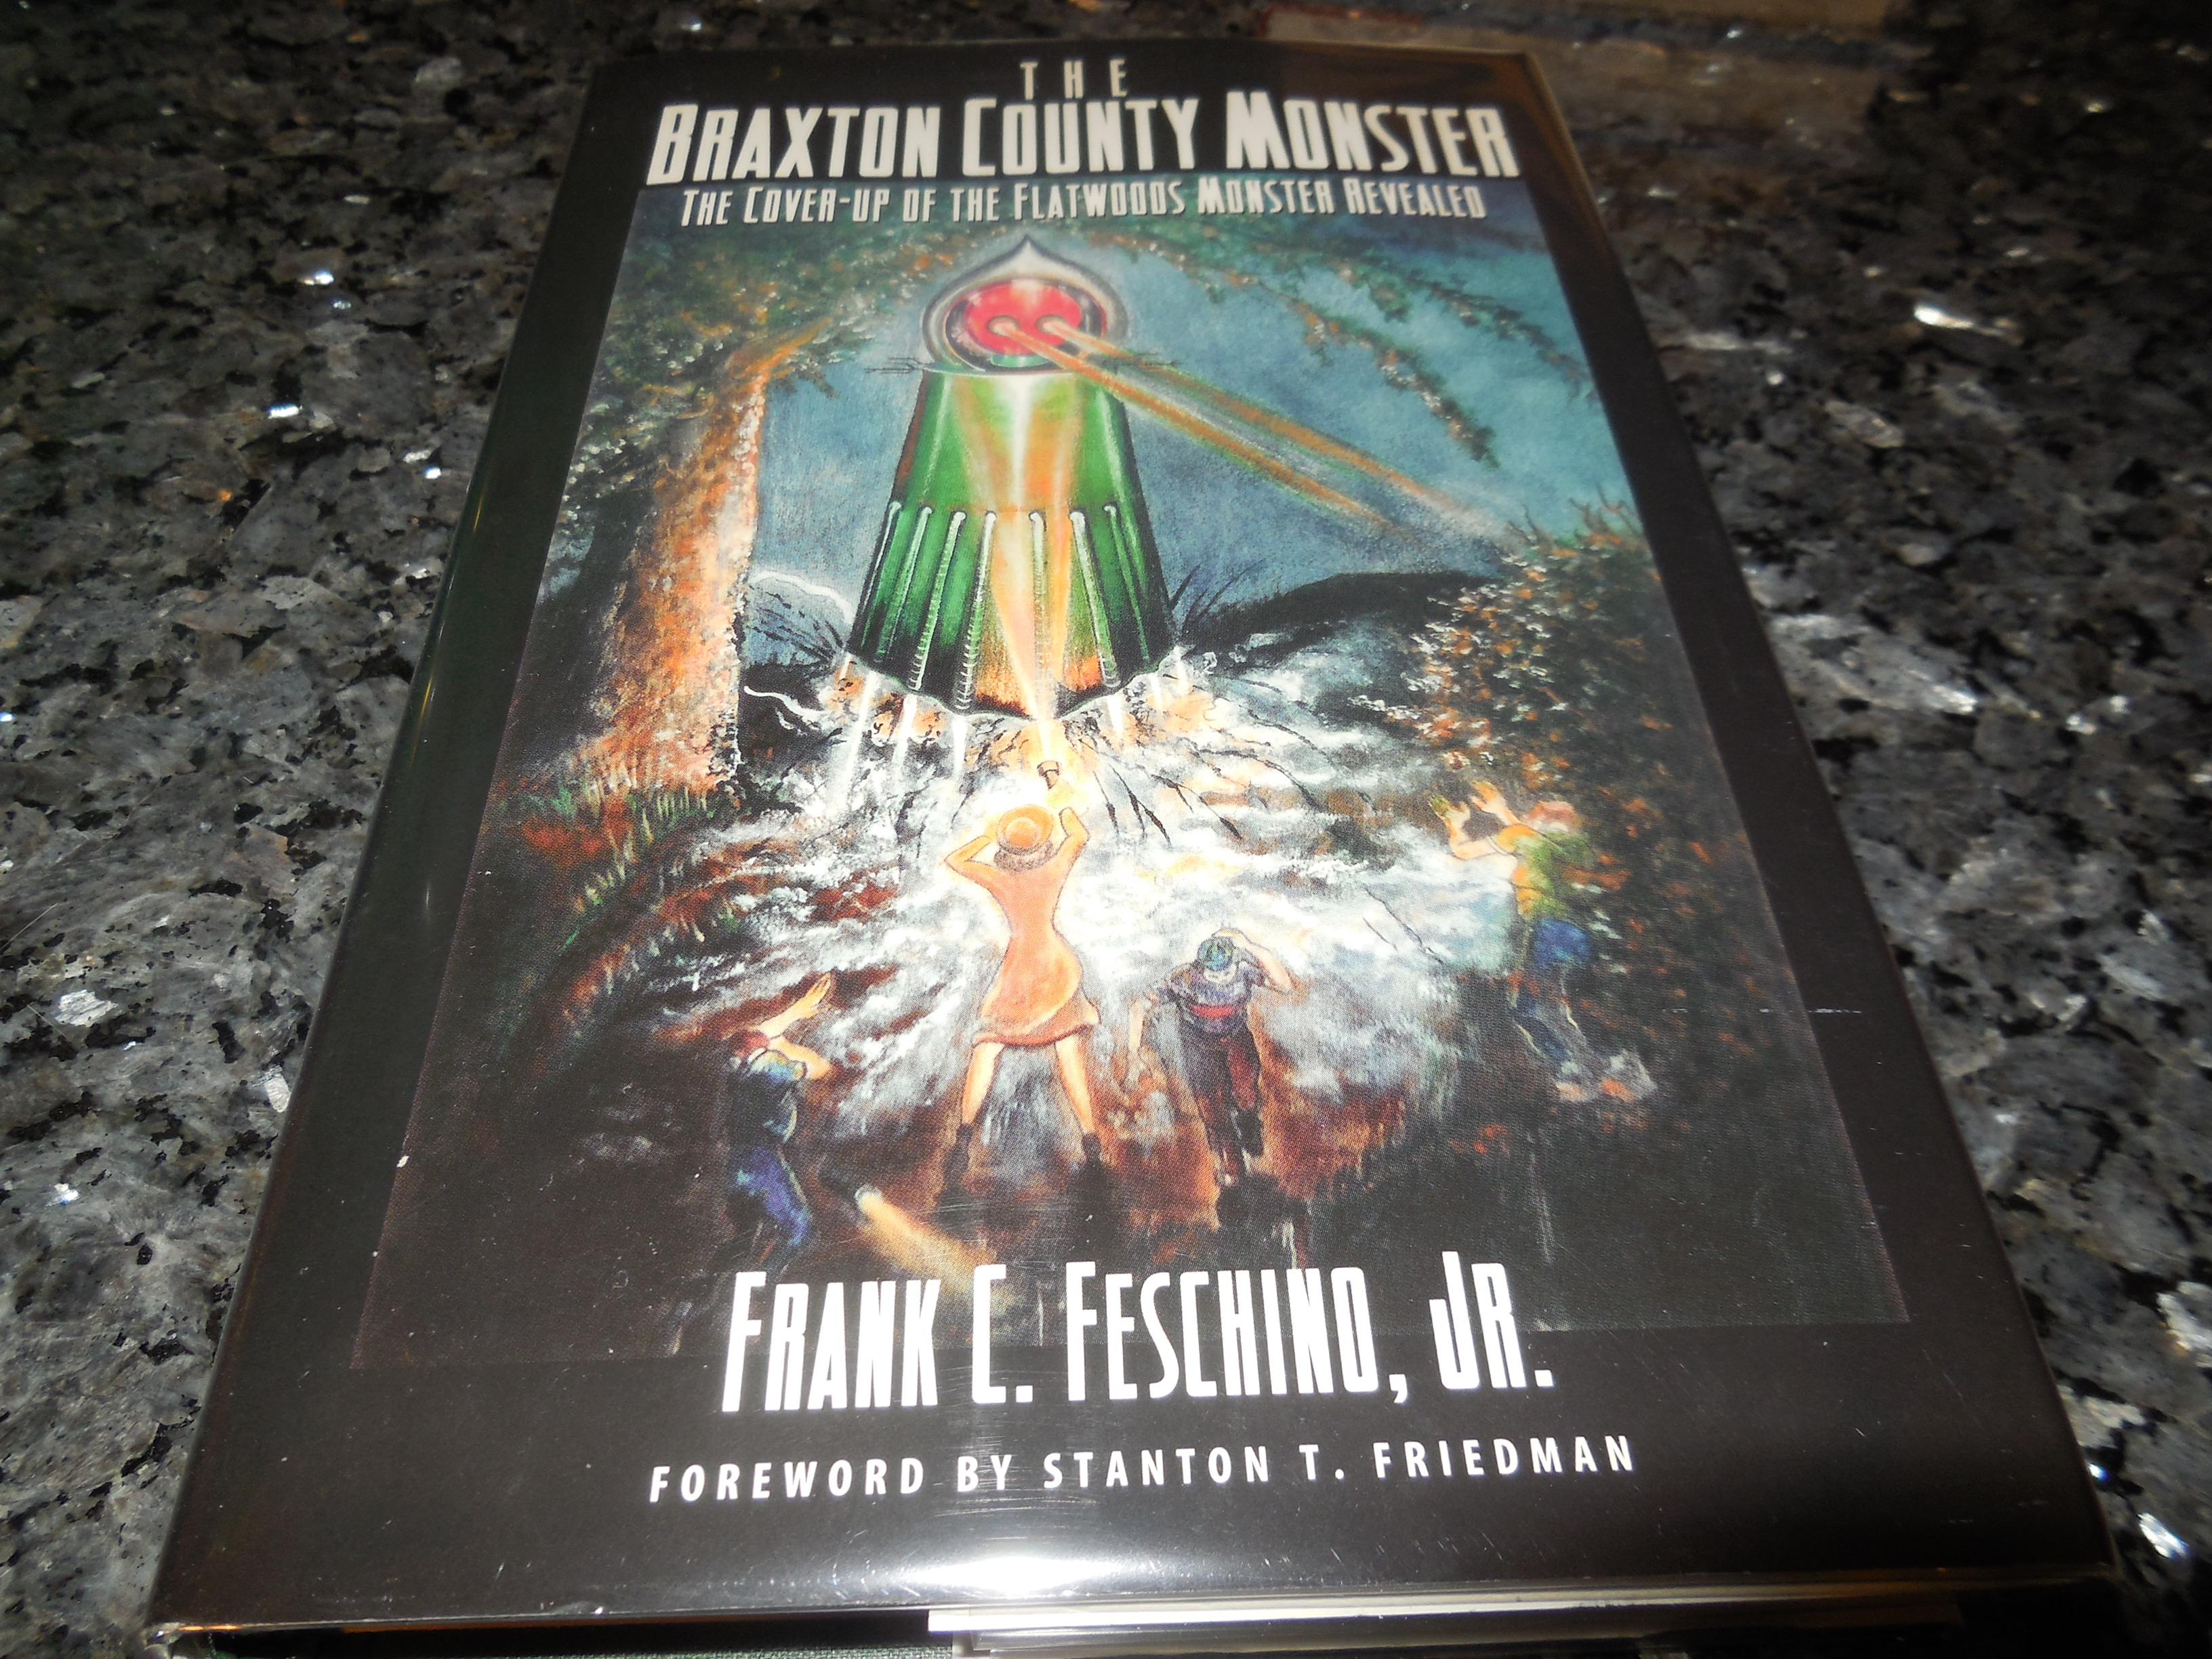 Image for The Braxton County Monster: The Cover-Up of the Flatwoods Monster Revealed